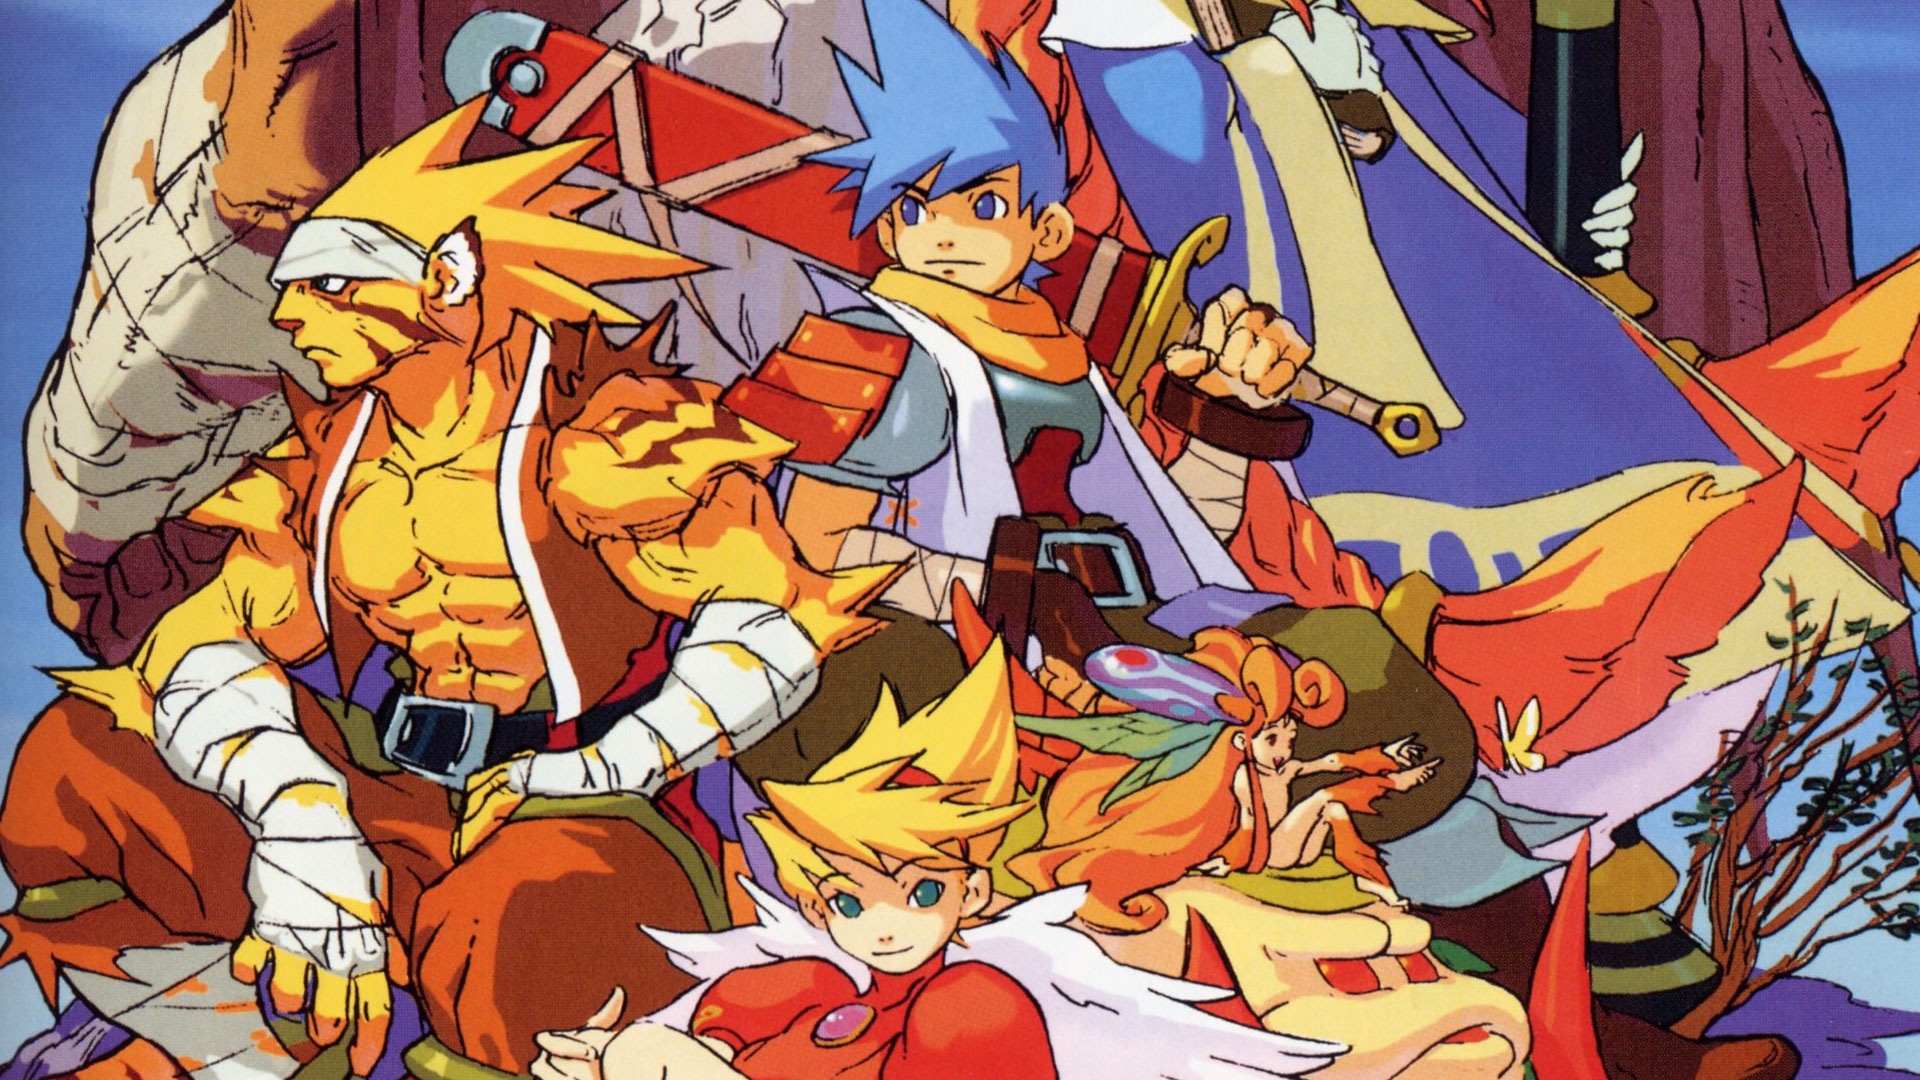 Breath of fire for psp free download